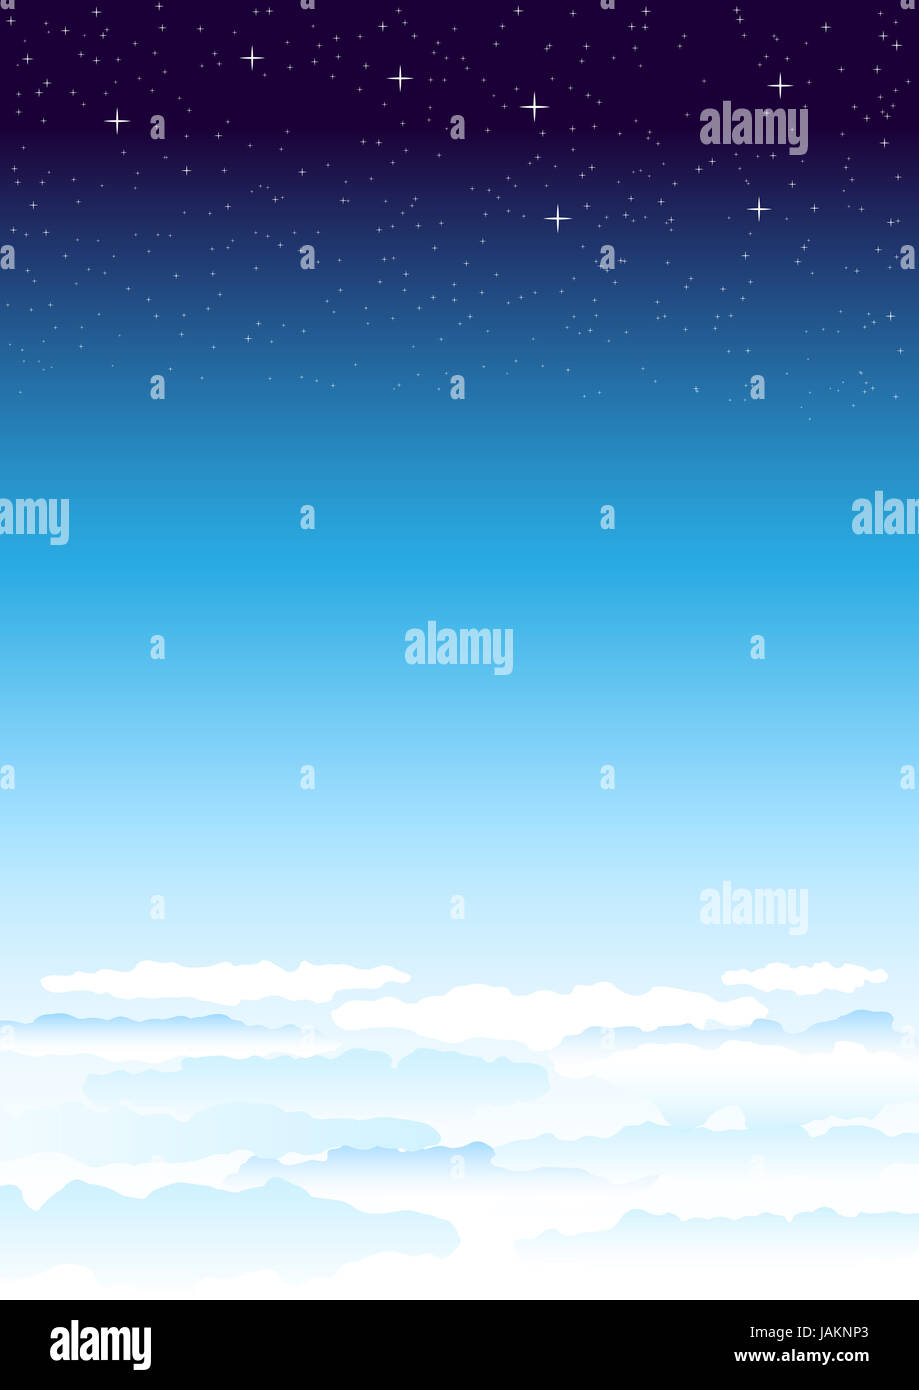 The big dipper. Heavenly atmosphere smoothly passing in space. - Stock Image